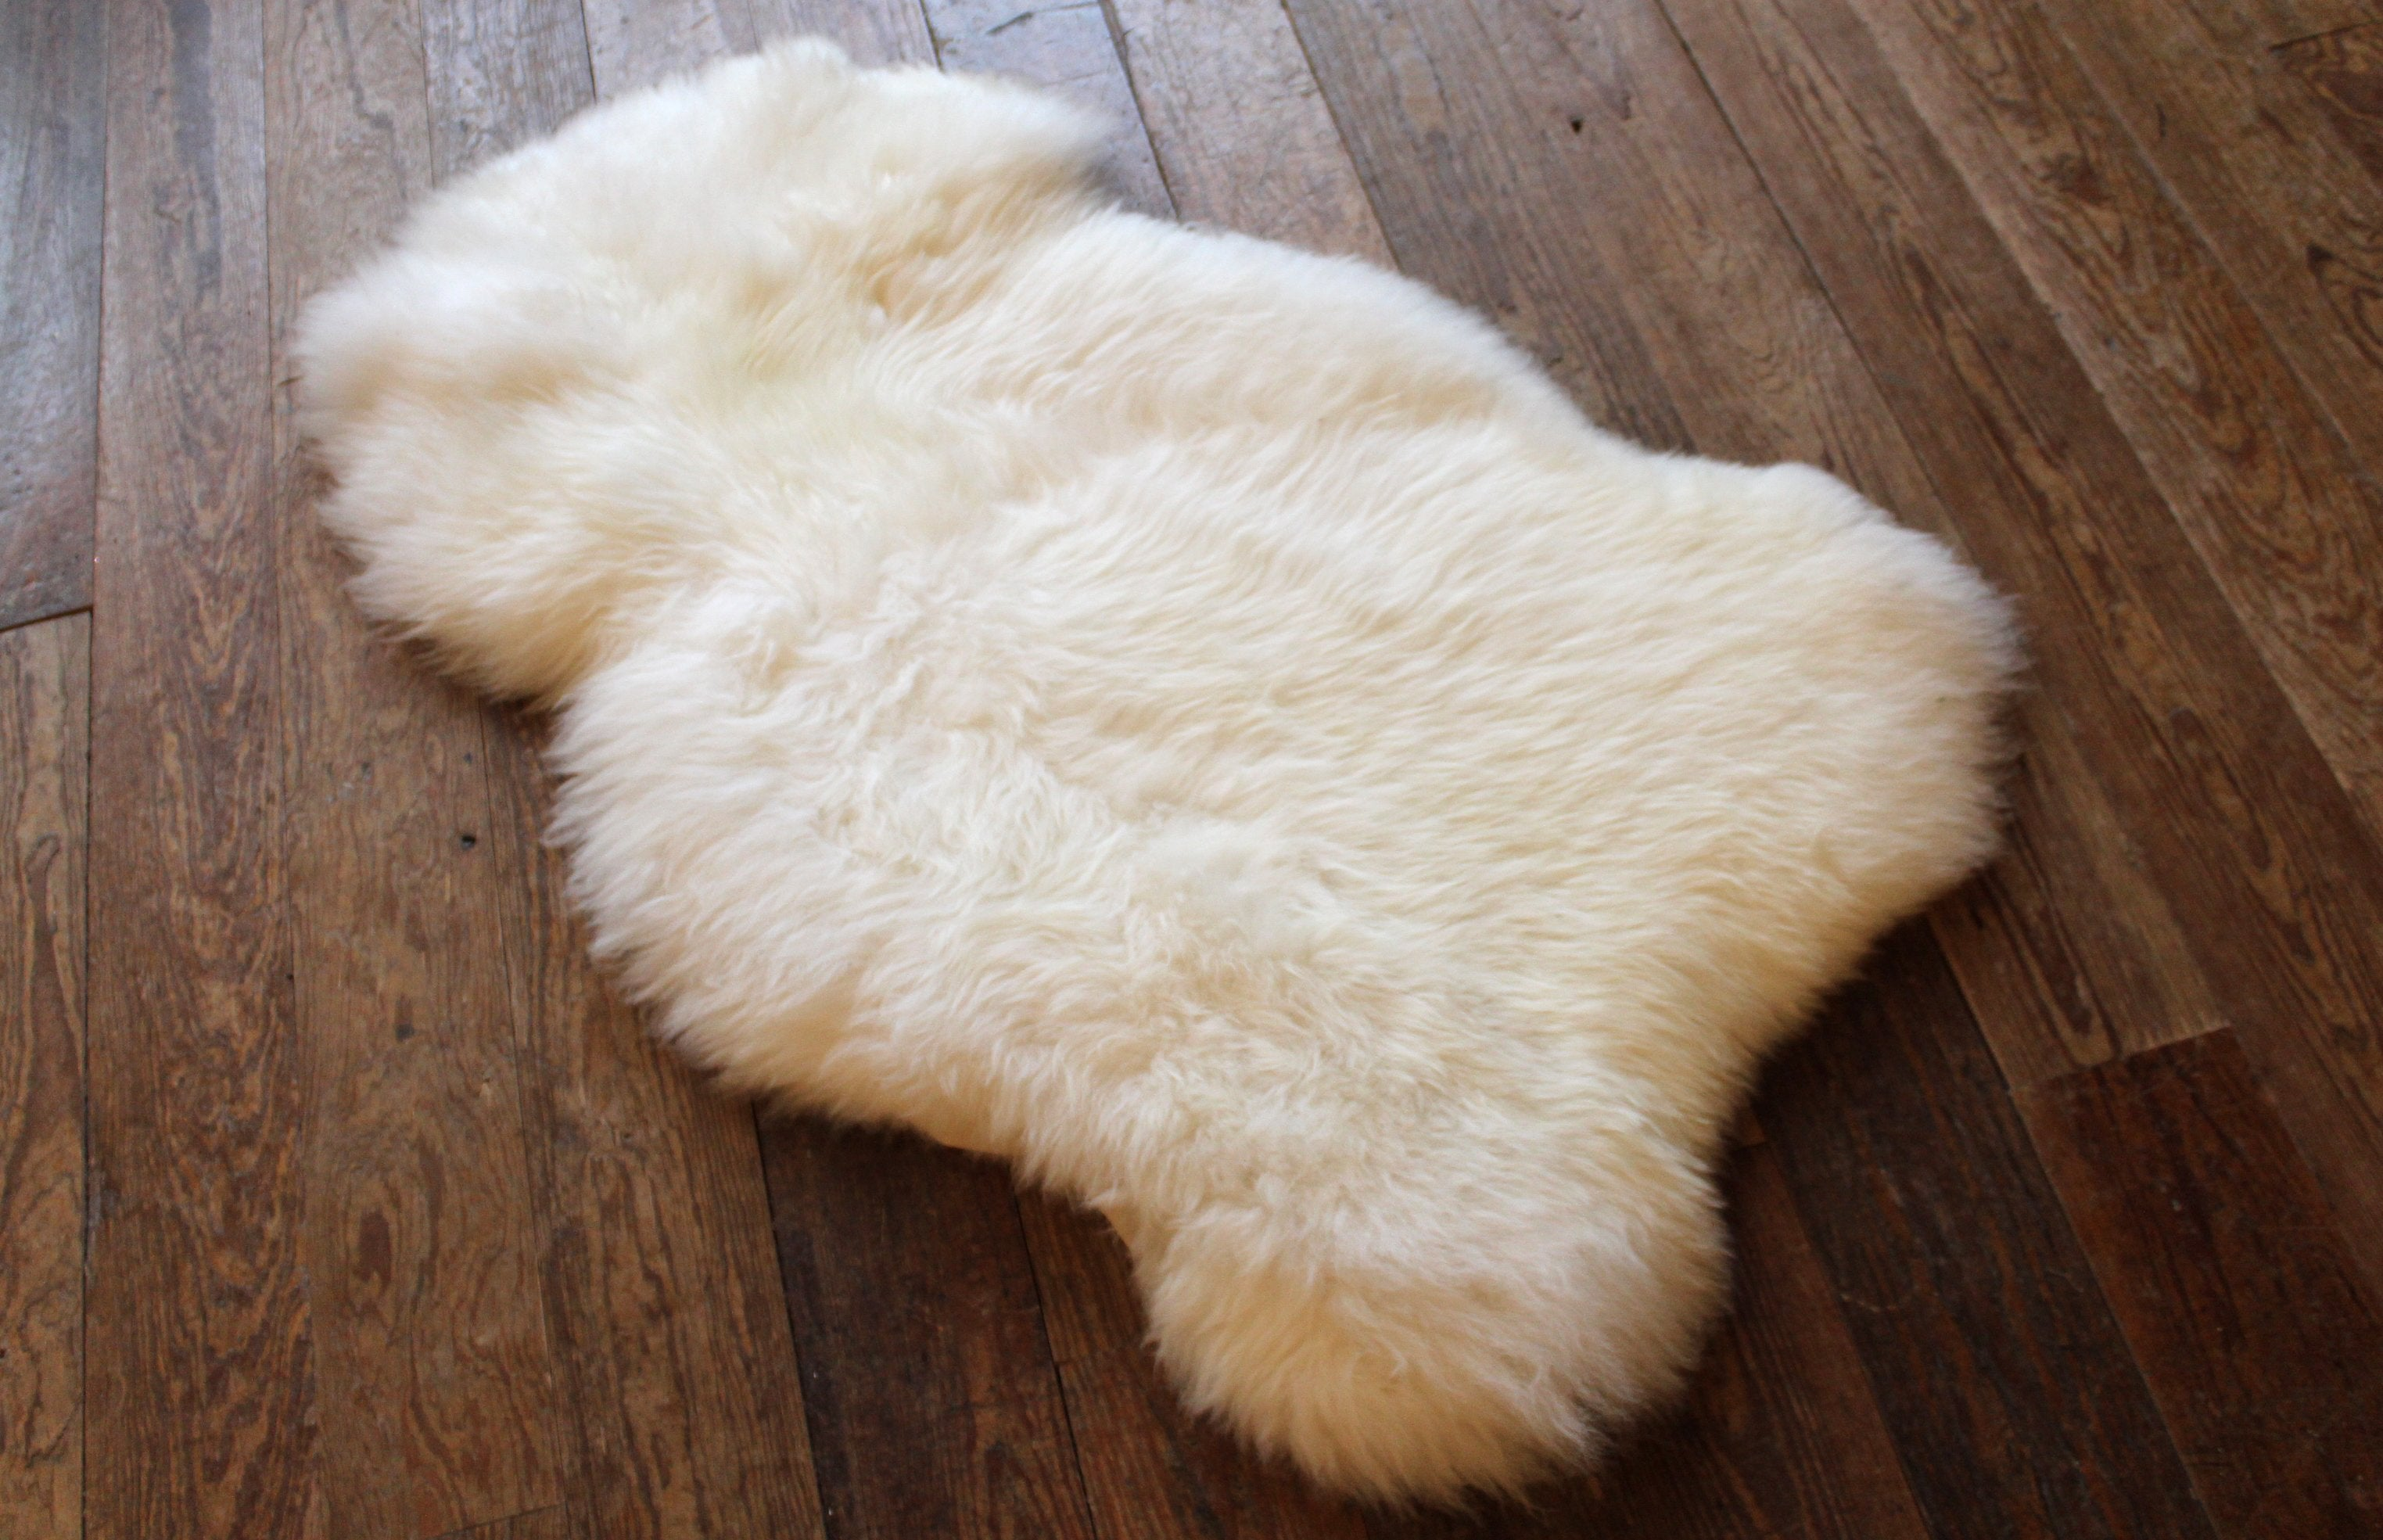 natural sheep skin rug on a wooden floor